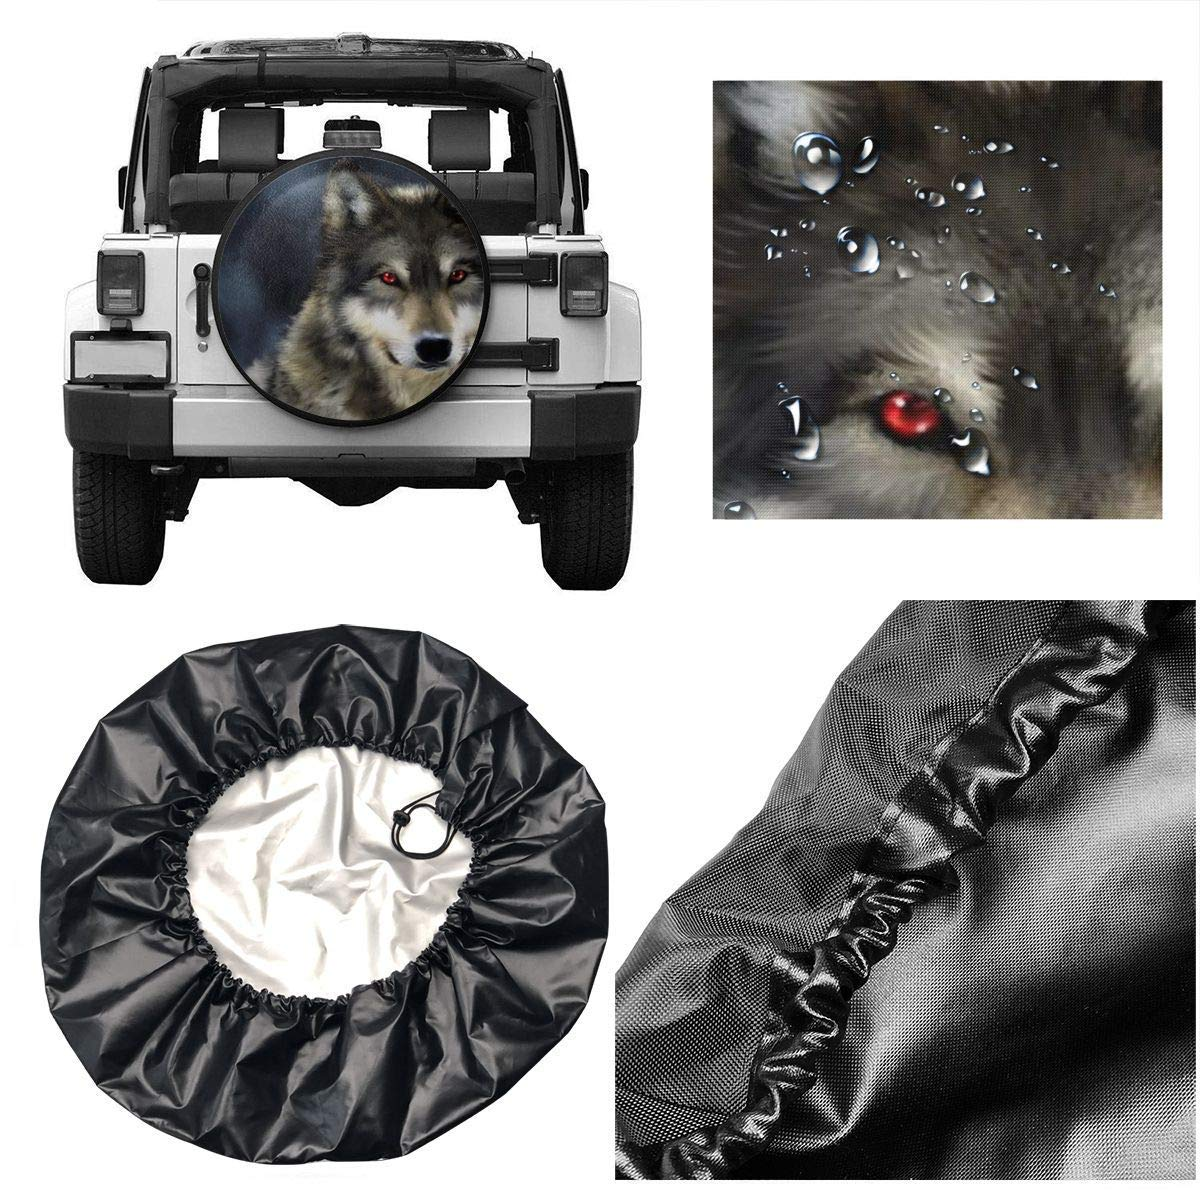 Belleeer Spare wheel cover Tire Cover Grey Wolf Red Eye Potable Polyester Spare Wheel Tire Cover Wheel Covers for Jeep Trailer RV SUV Truck Camper Travel Trailer Accessories 14,15,16,17 Inch